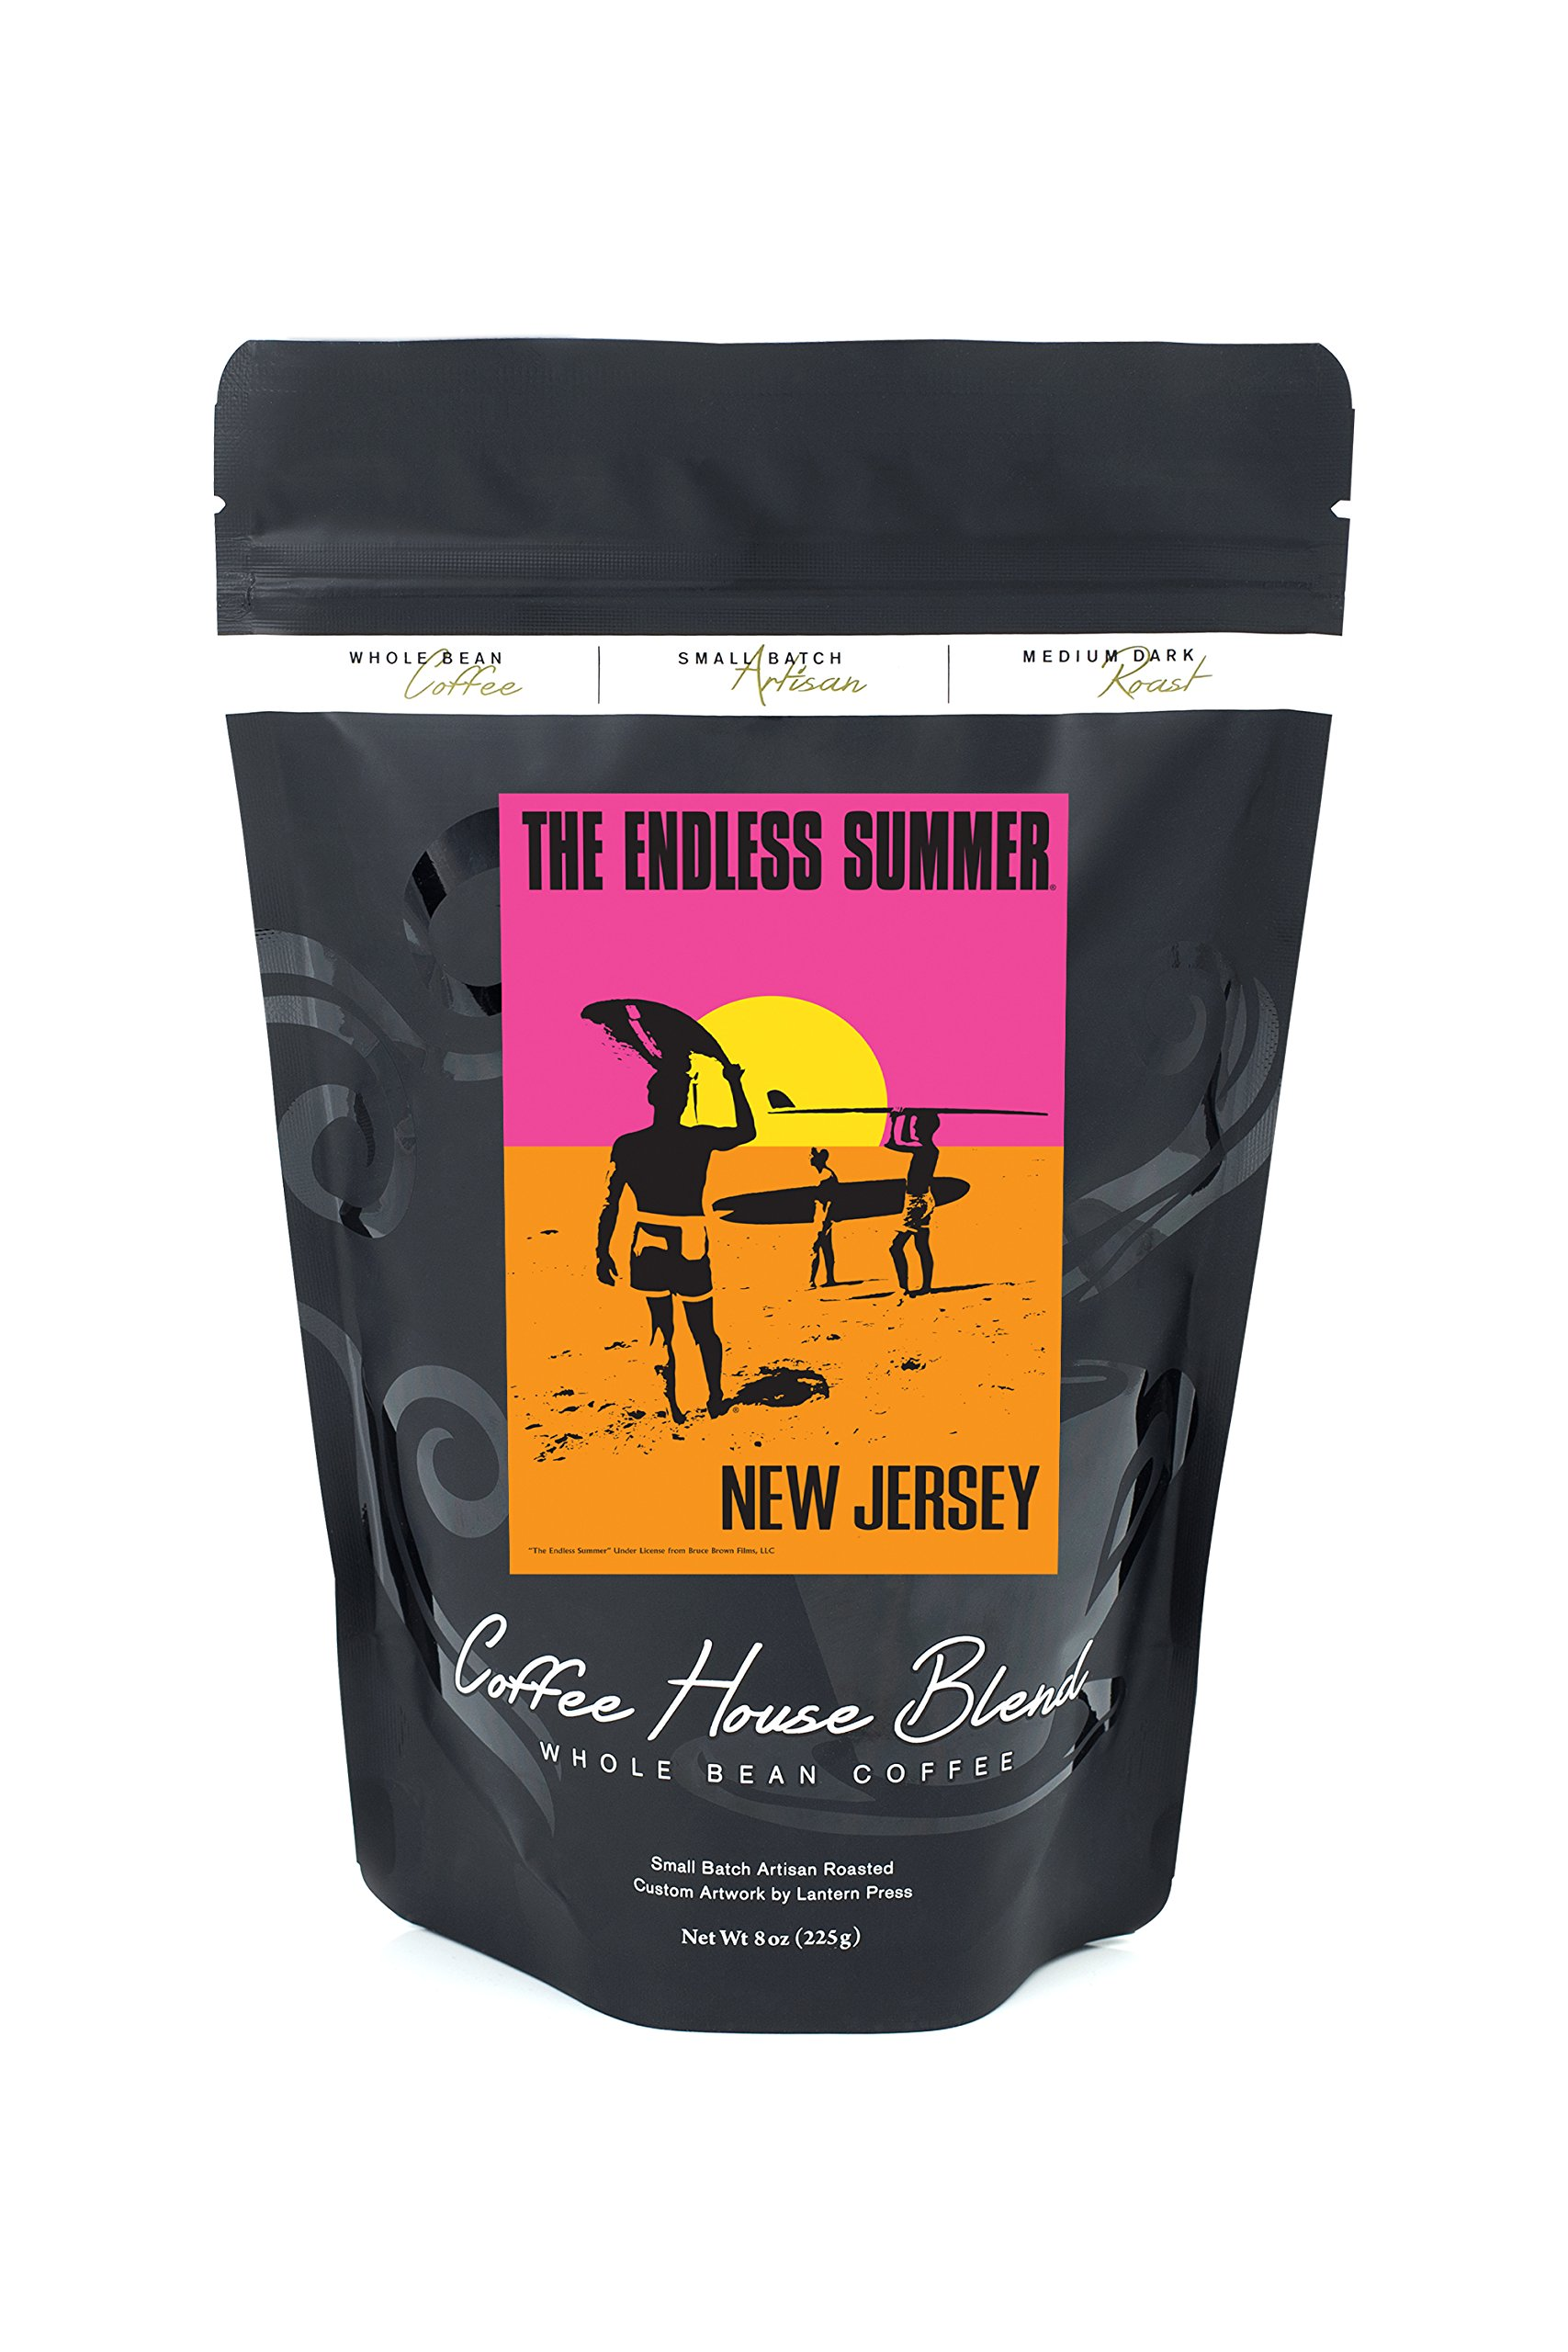 New Jersey - The Endless Summer - Original Movie Poster (8oz Whole Bean Small Batch Artisan Coffee - Bold & Strong Medium Dark Roast w/ Artwork) by Lantern Press